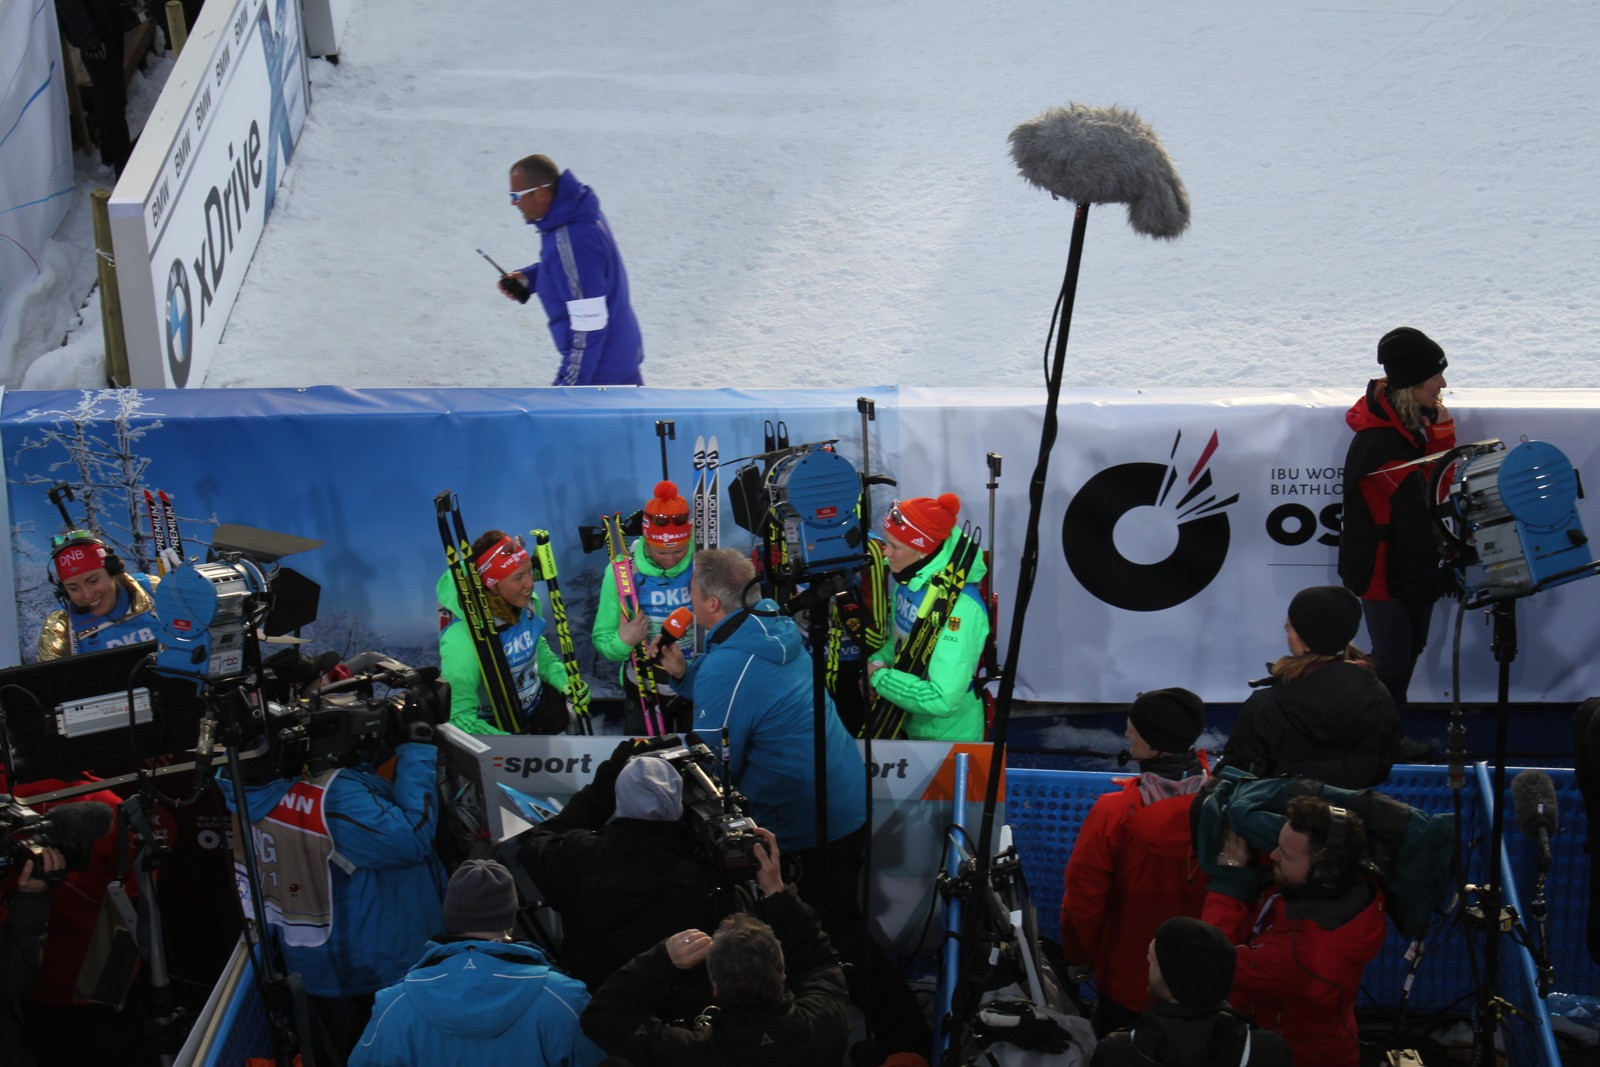 Women's relay, Mixed zone 11 March